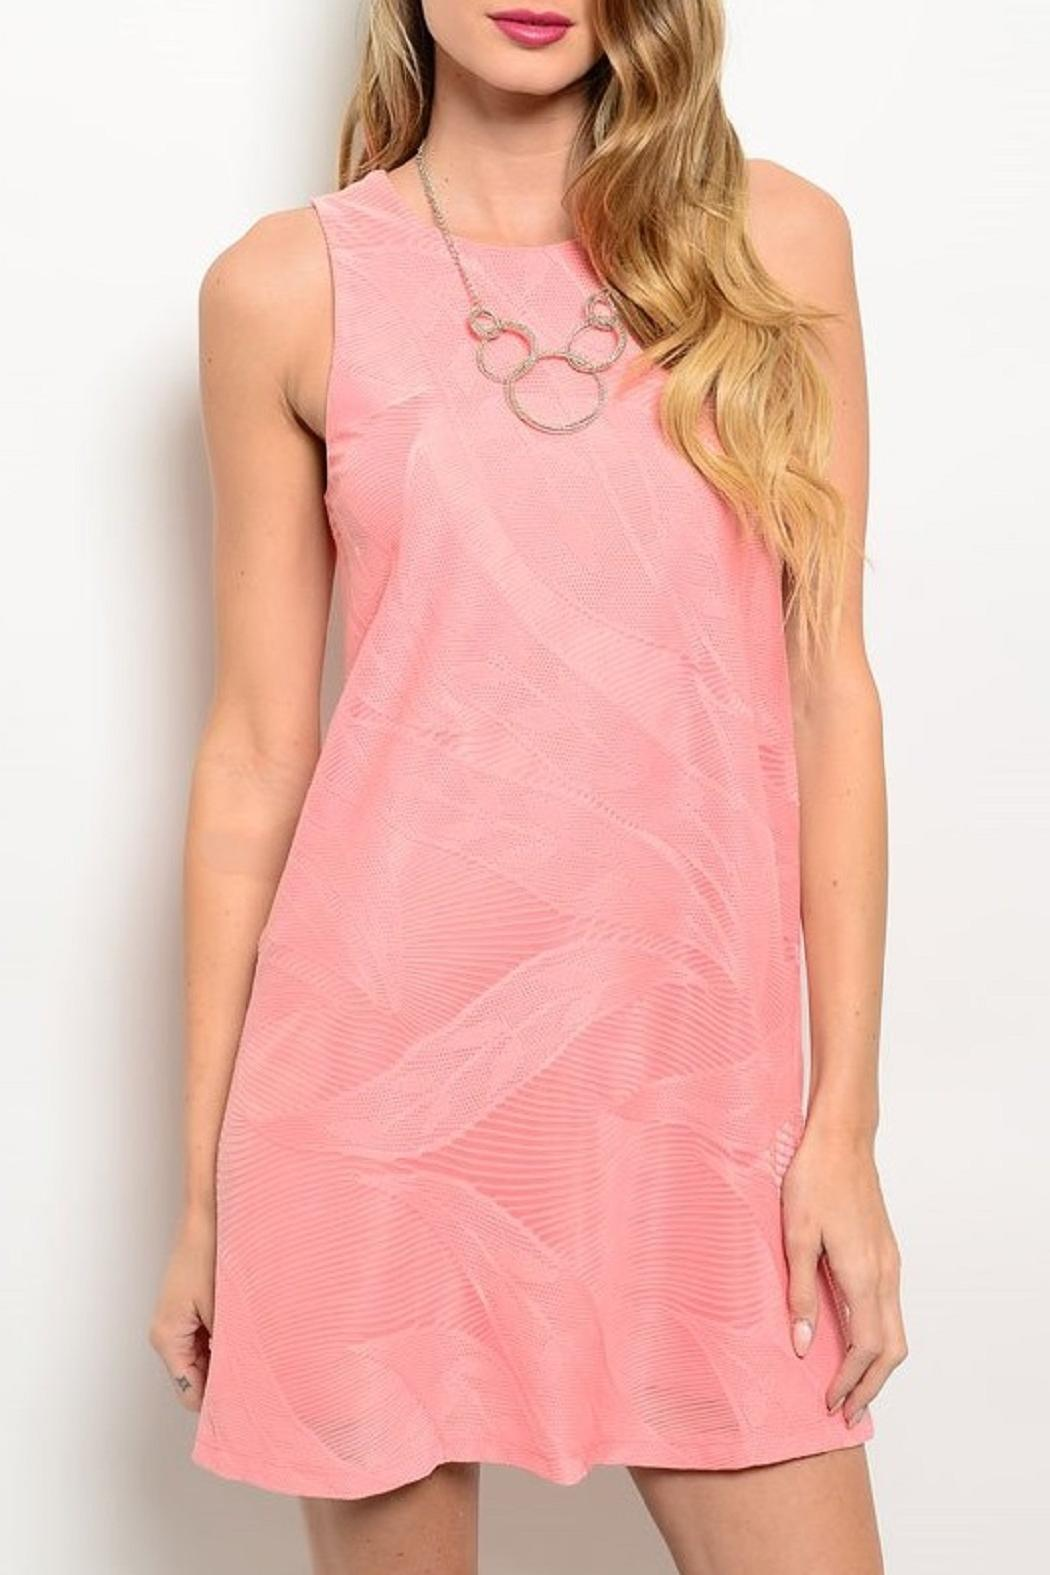 Adore Clothes More Coral Summer Dress From Washington Shoptiques